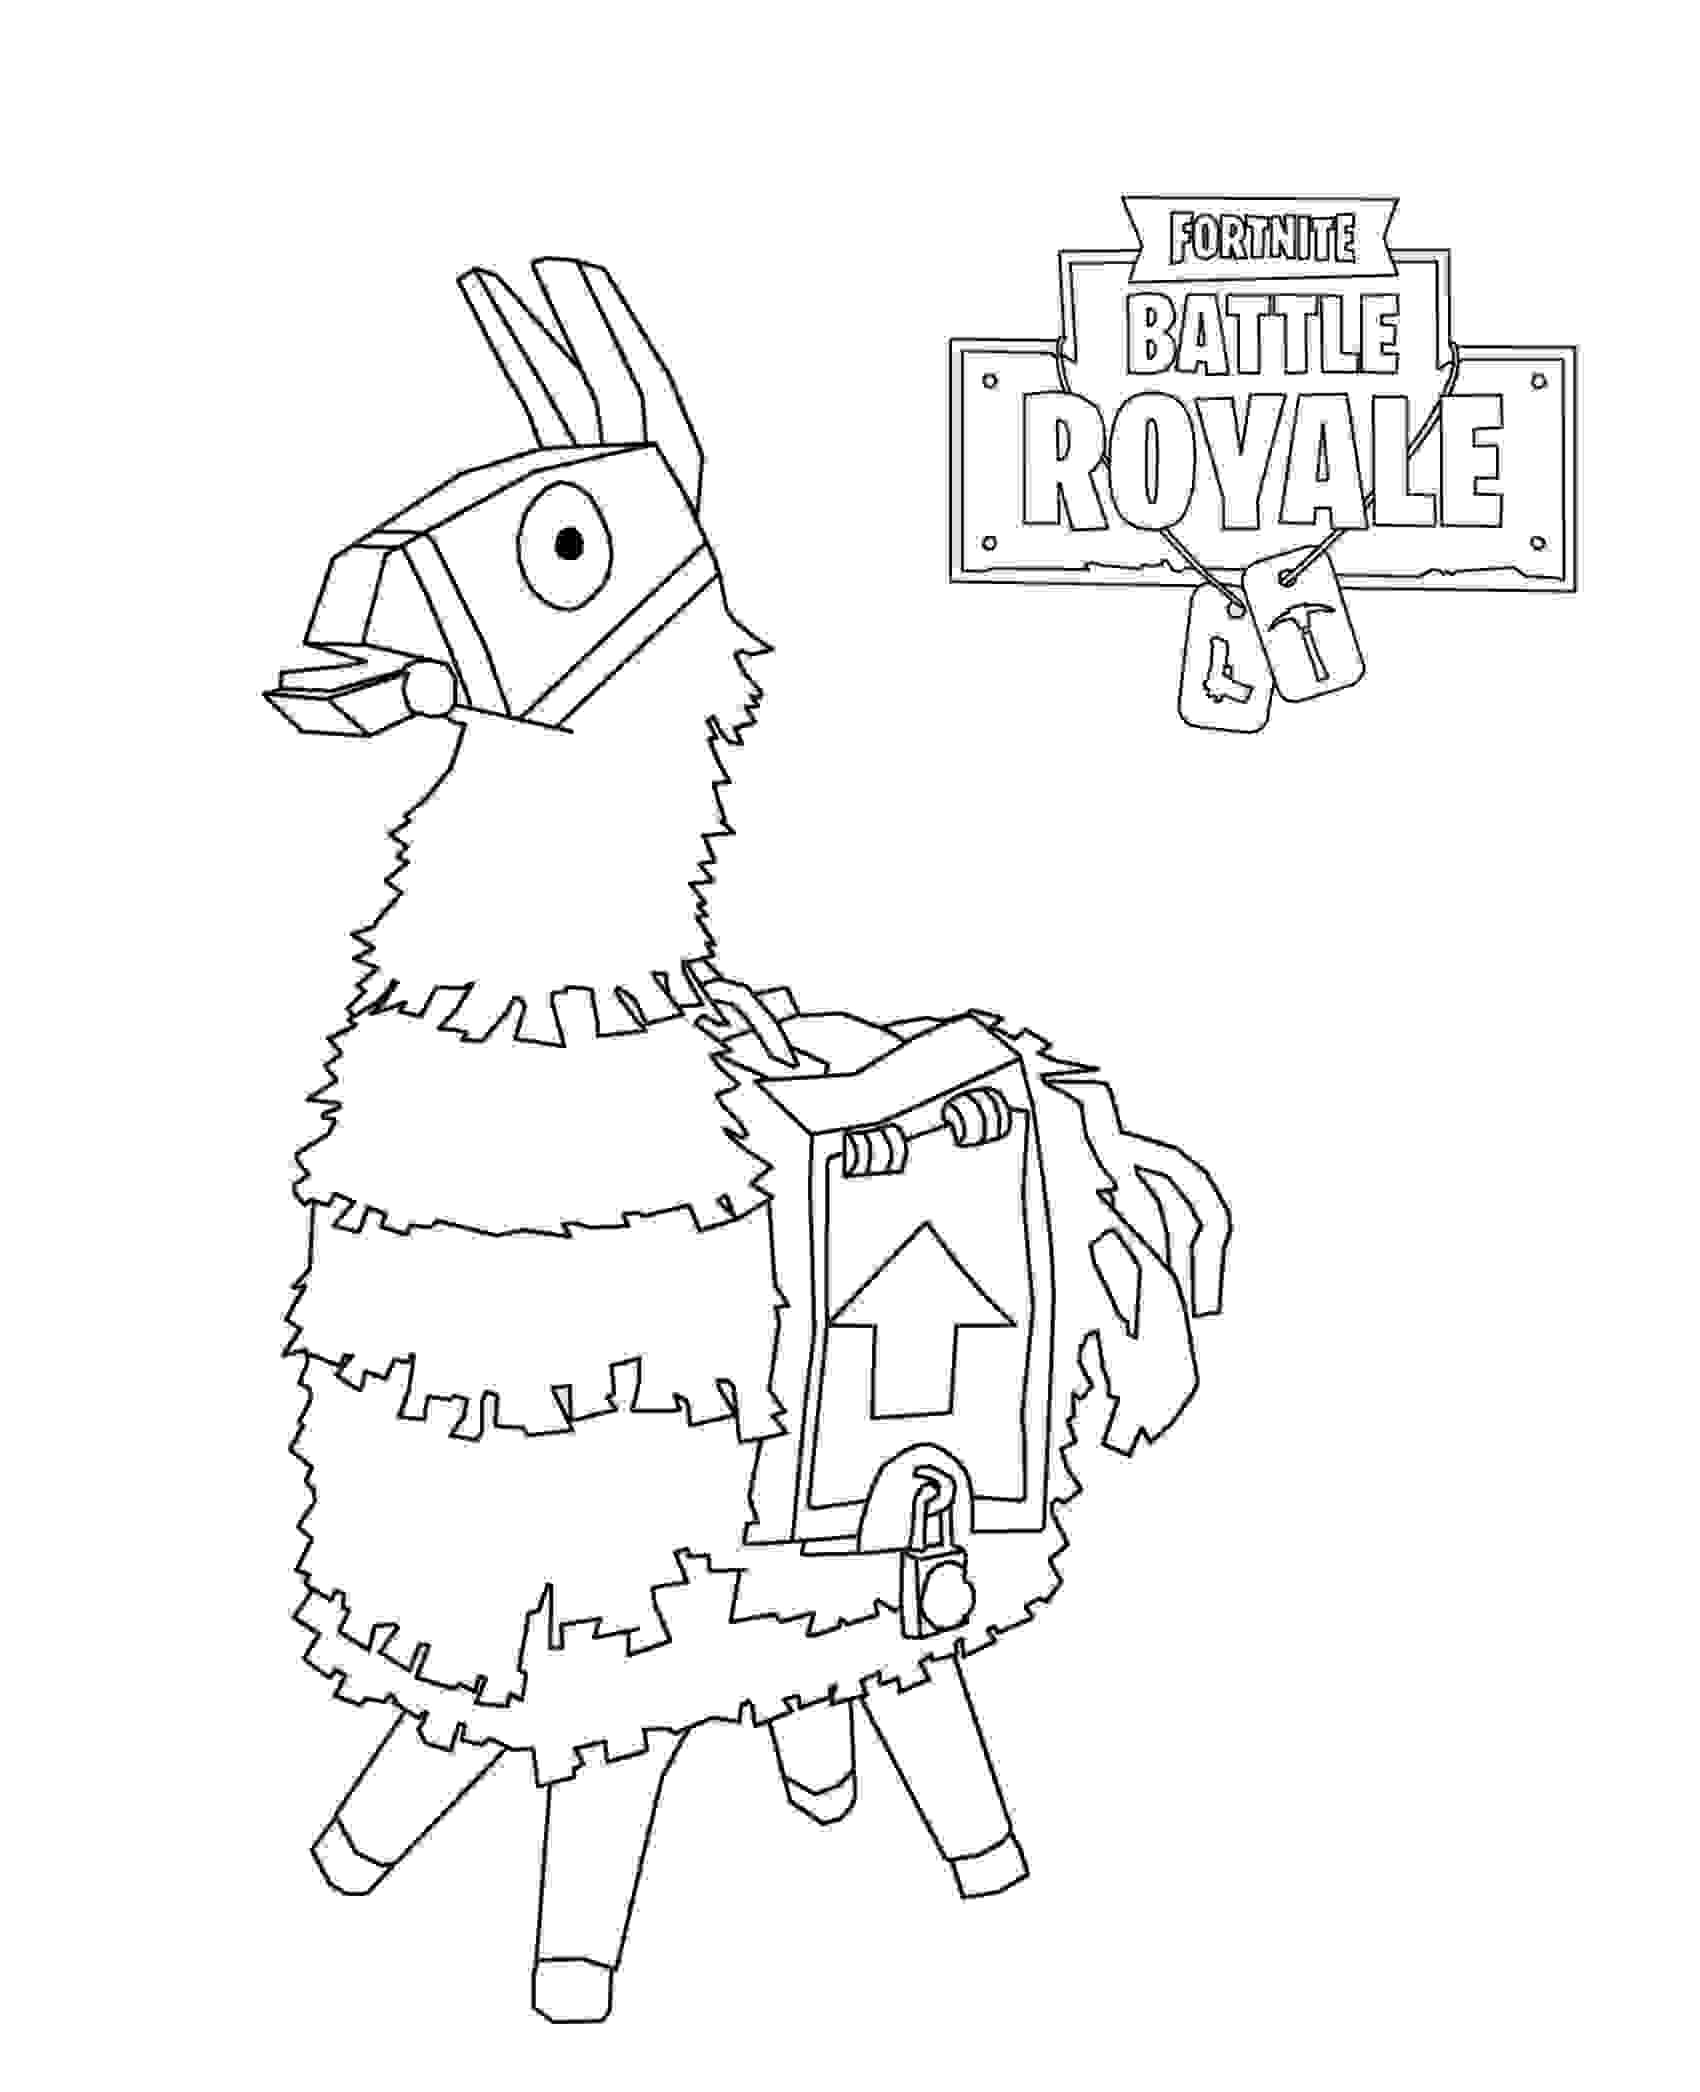 Loot Llama in Fortnite Save the World Coloring Page